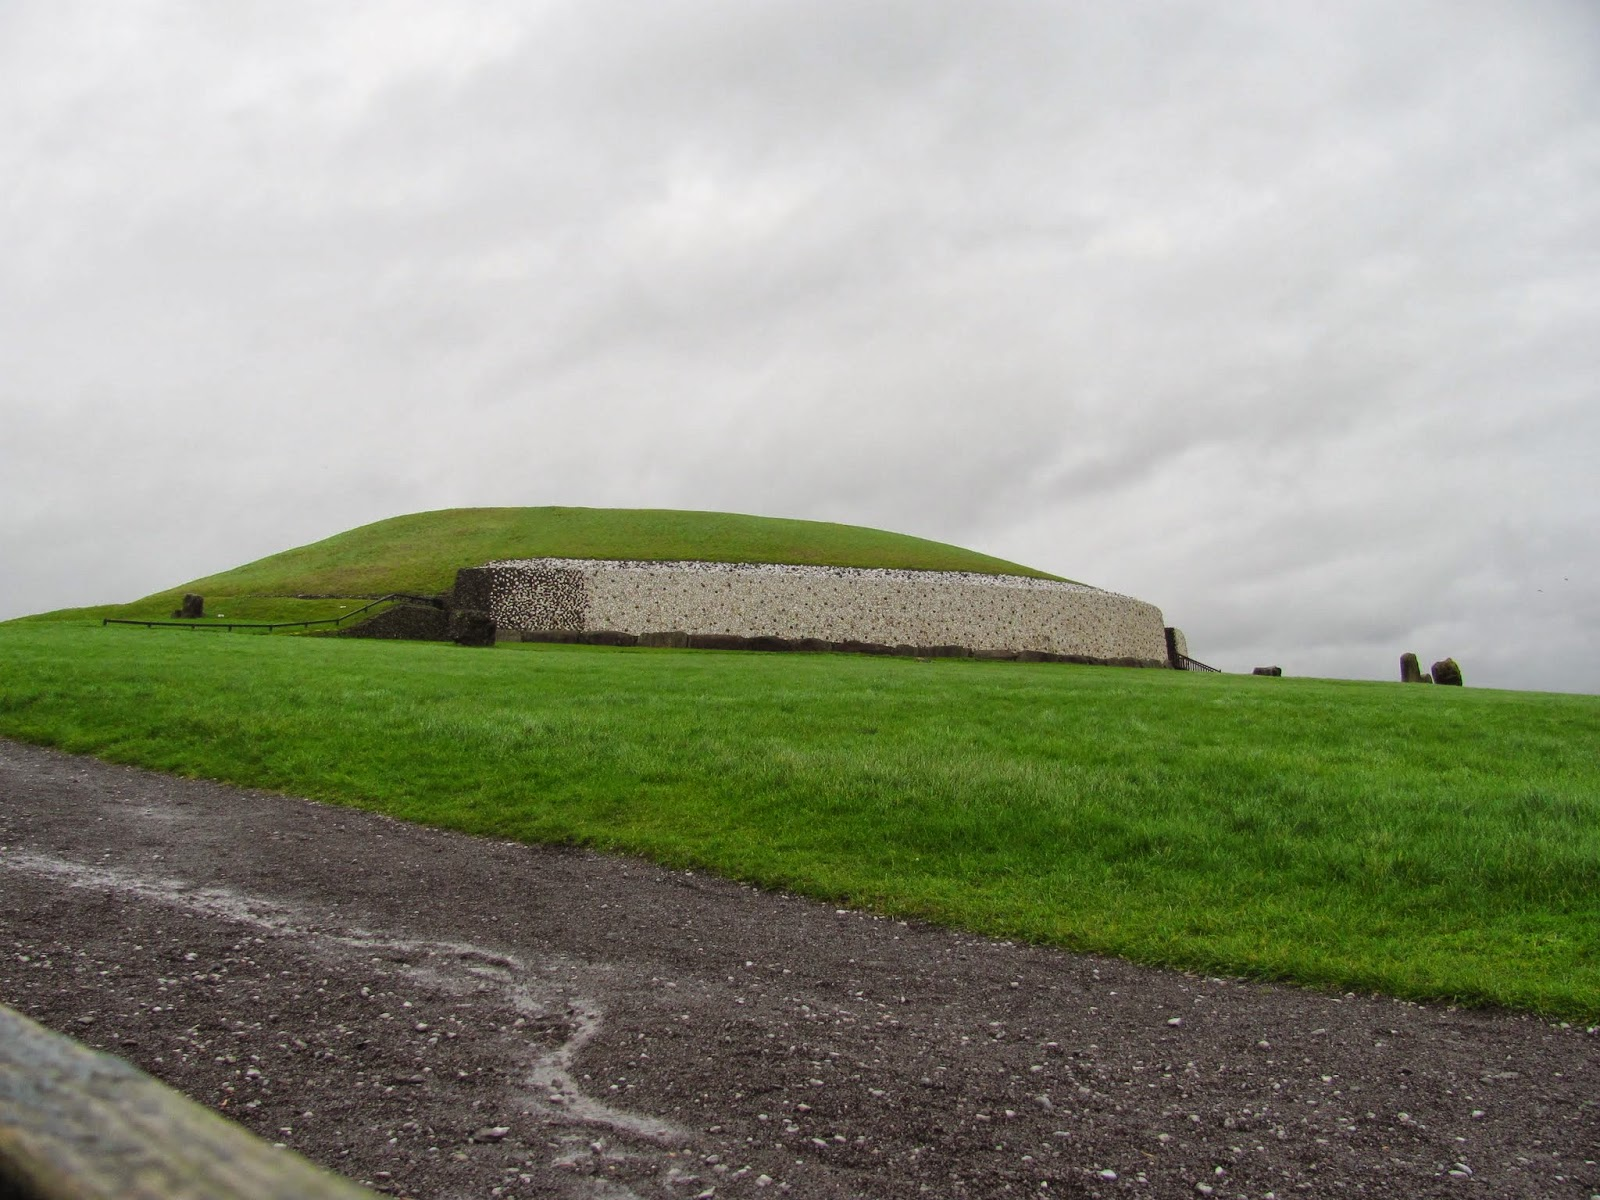 View of Newgrange from Bottom of the Hill Co. Meath, Ireland